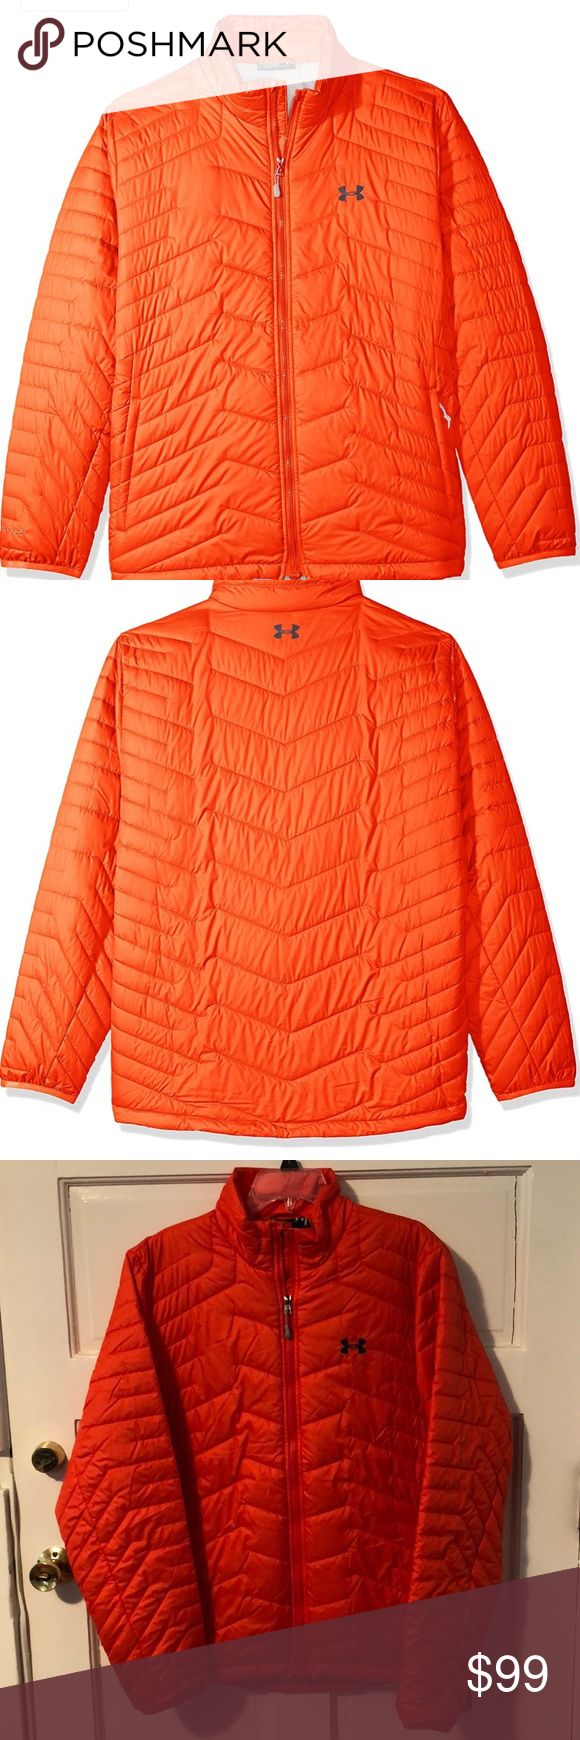 NWT Under Armour Men's ColdGear Reactor Jacket L NWT Under Armour Men's ColdGear Reactor Jacket Large. Orange. Great jacket!! Under Armour Jackets & Coats Puffers